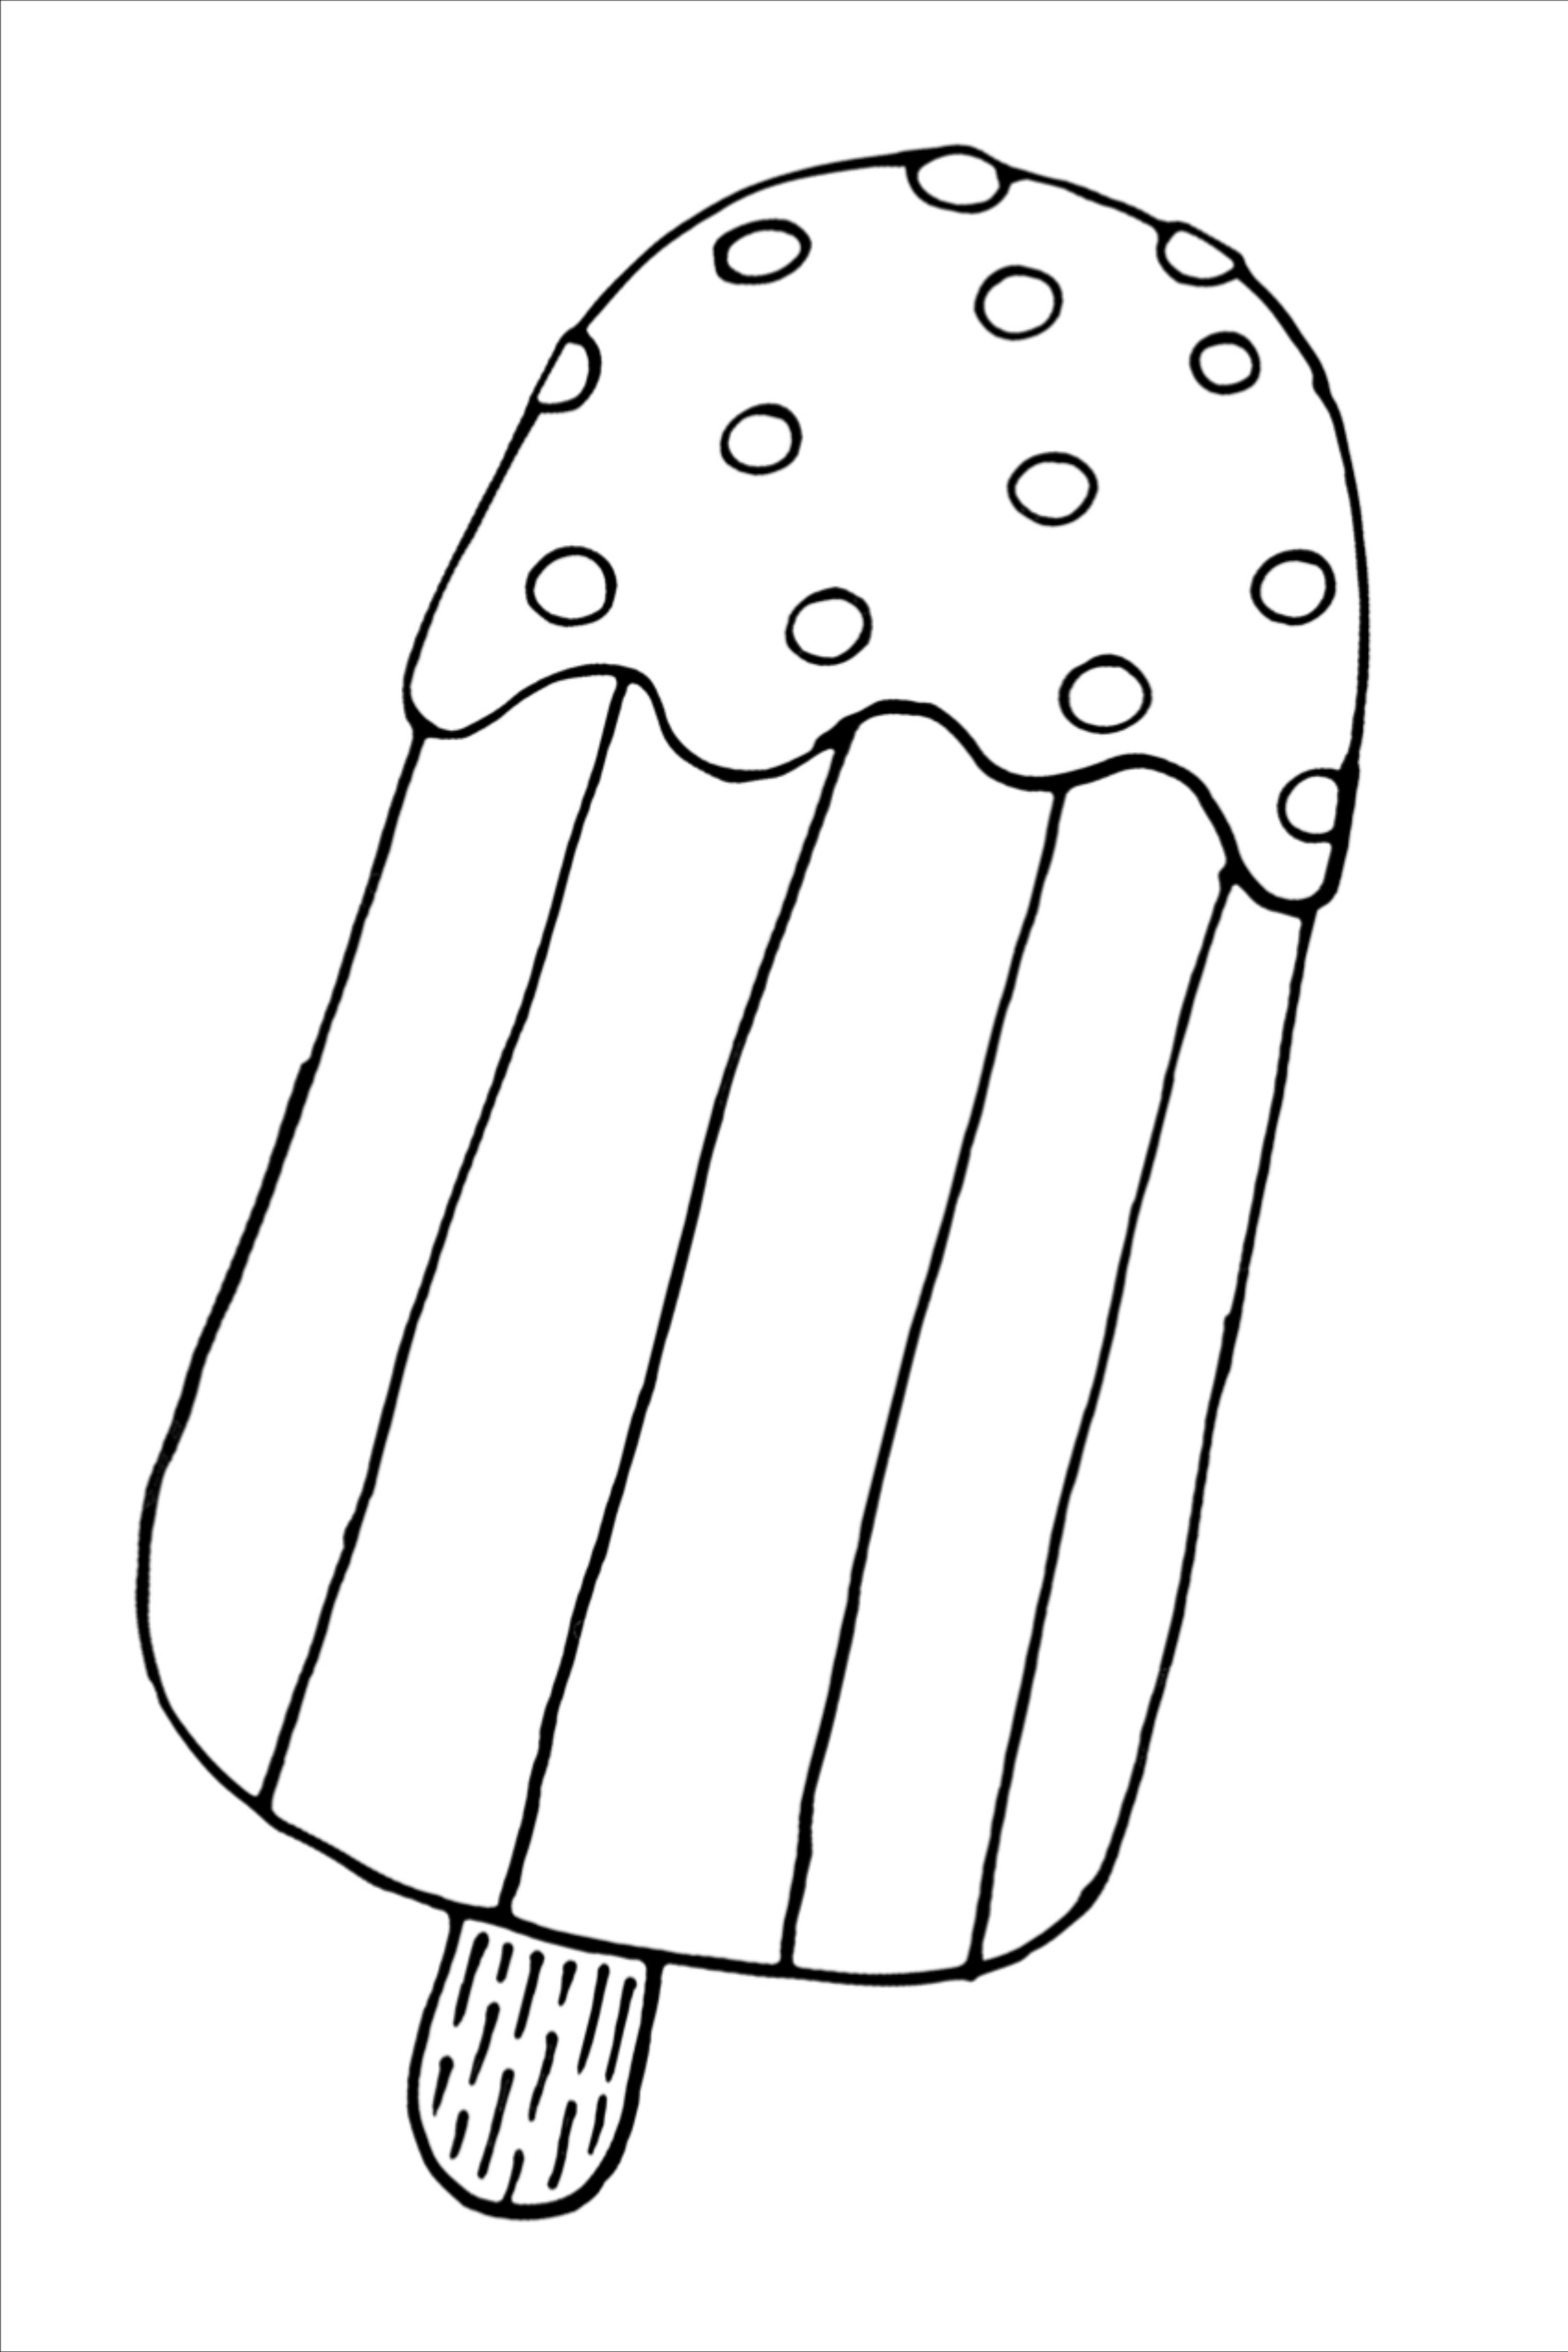 50 Ice Cream Coloring Pages For Kids Ice Cream Coloring Pages Coloring Pages For Kids Coloring Pages